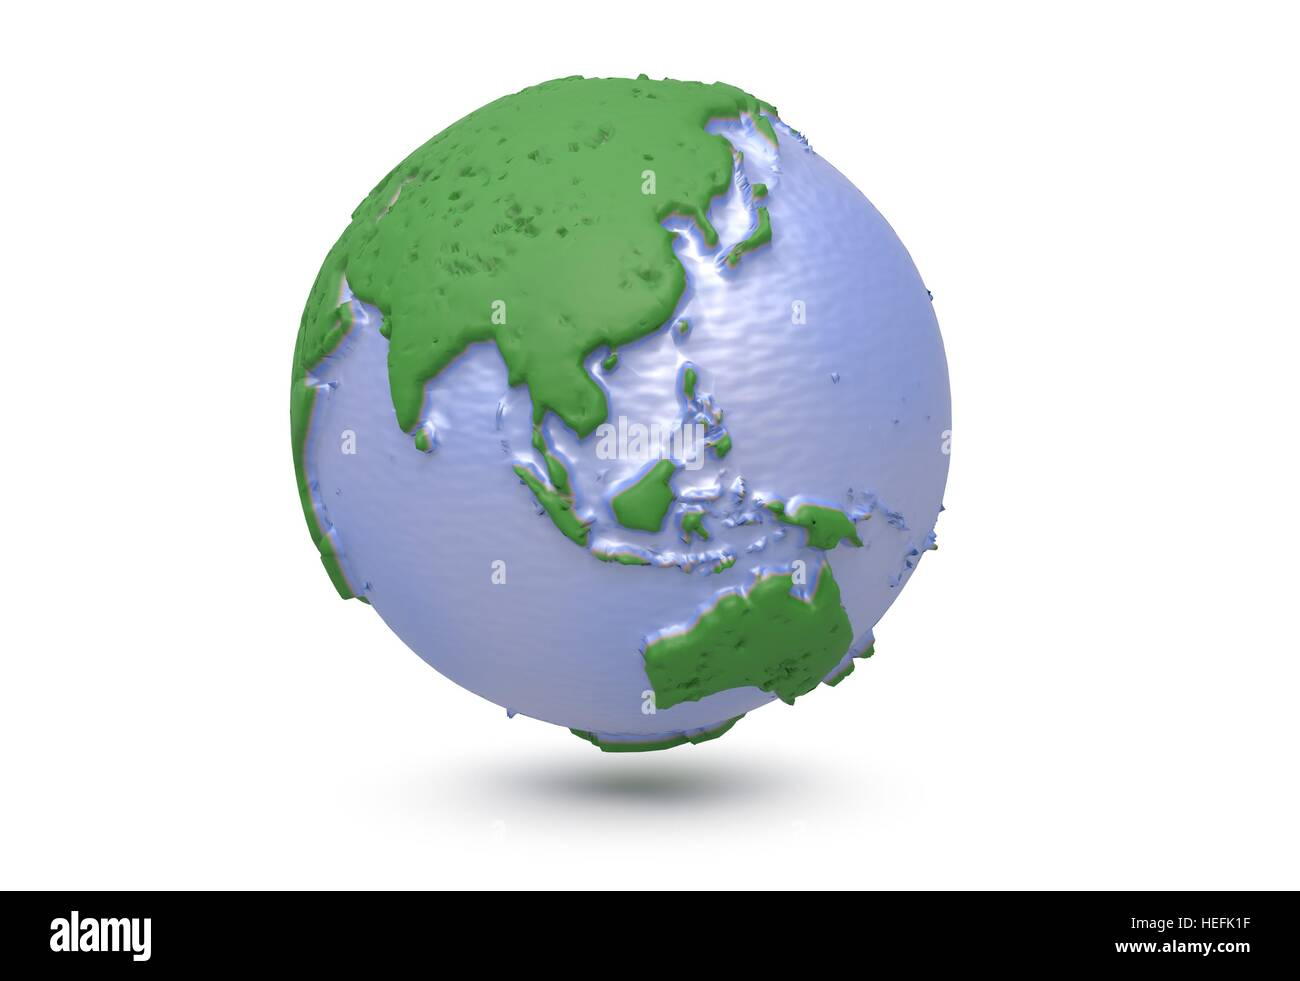 earth world map polygonal globe asia 3d illustration